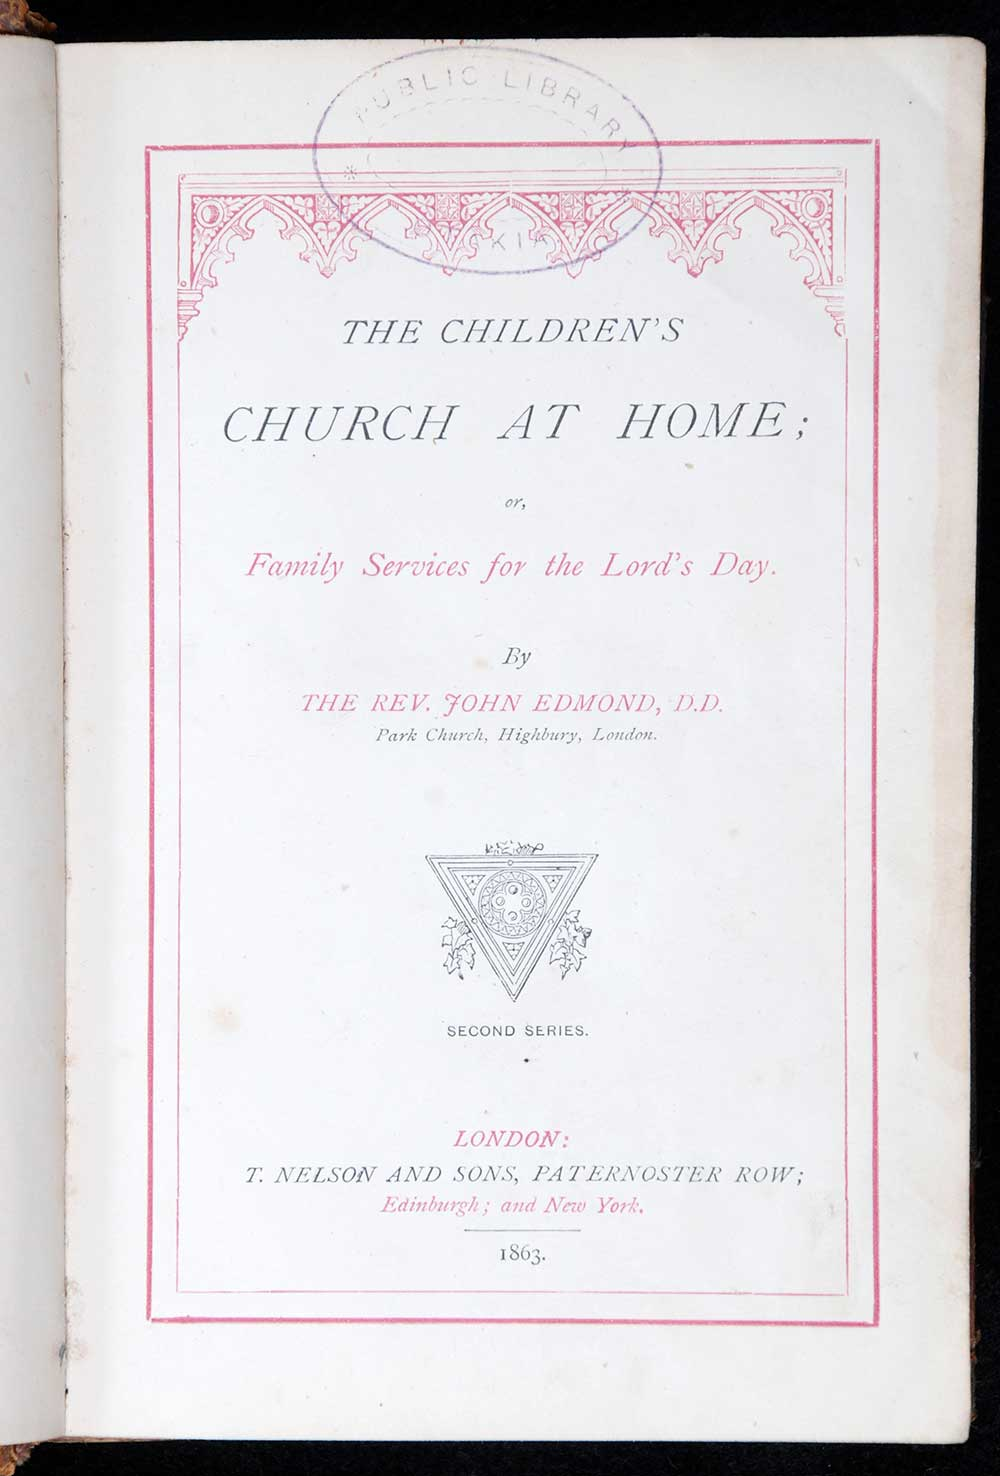 John Edmond. <em>The children's church at home, or, Family services for the Lord's day.</em> London: T. Nelson & Sons, 1863.